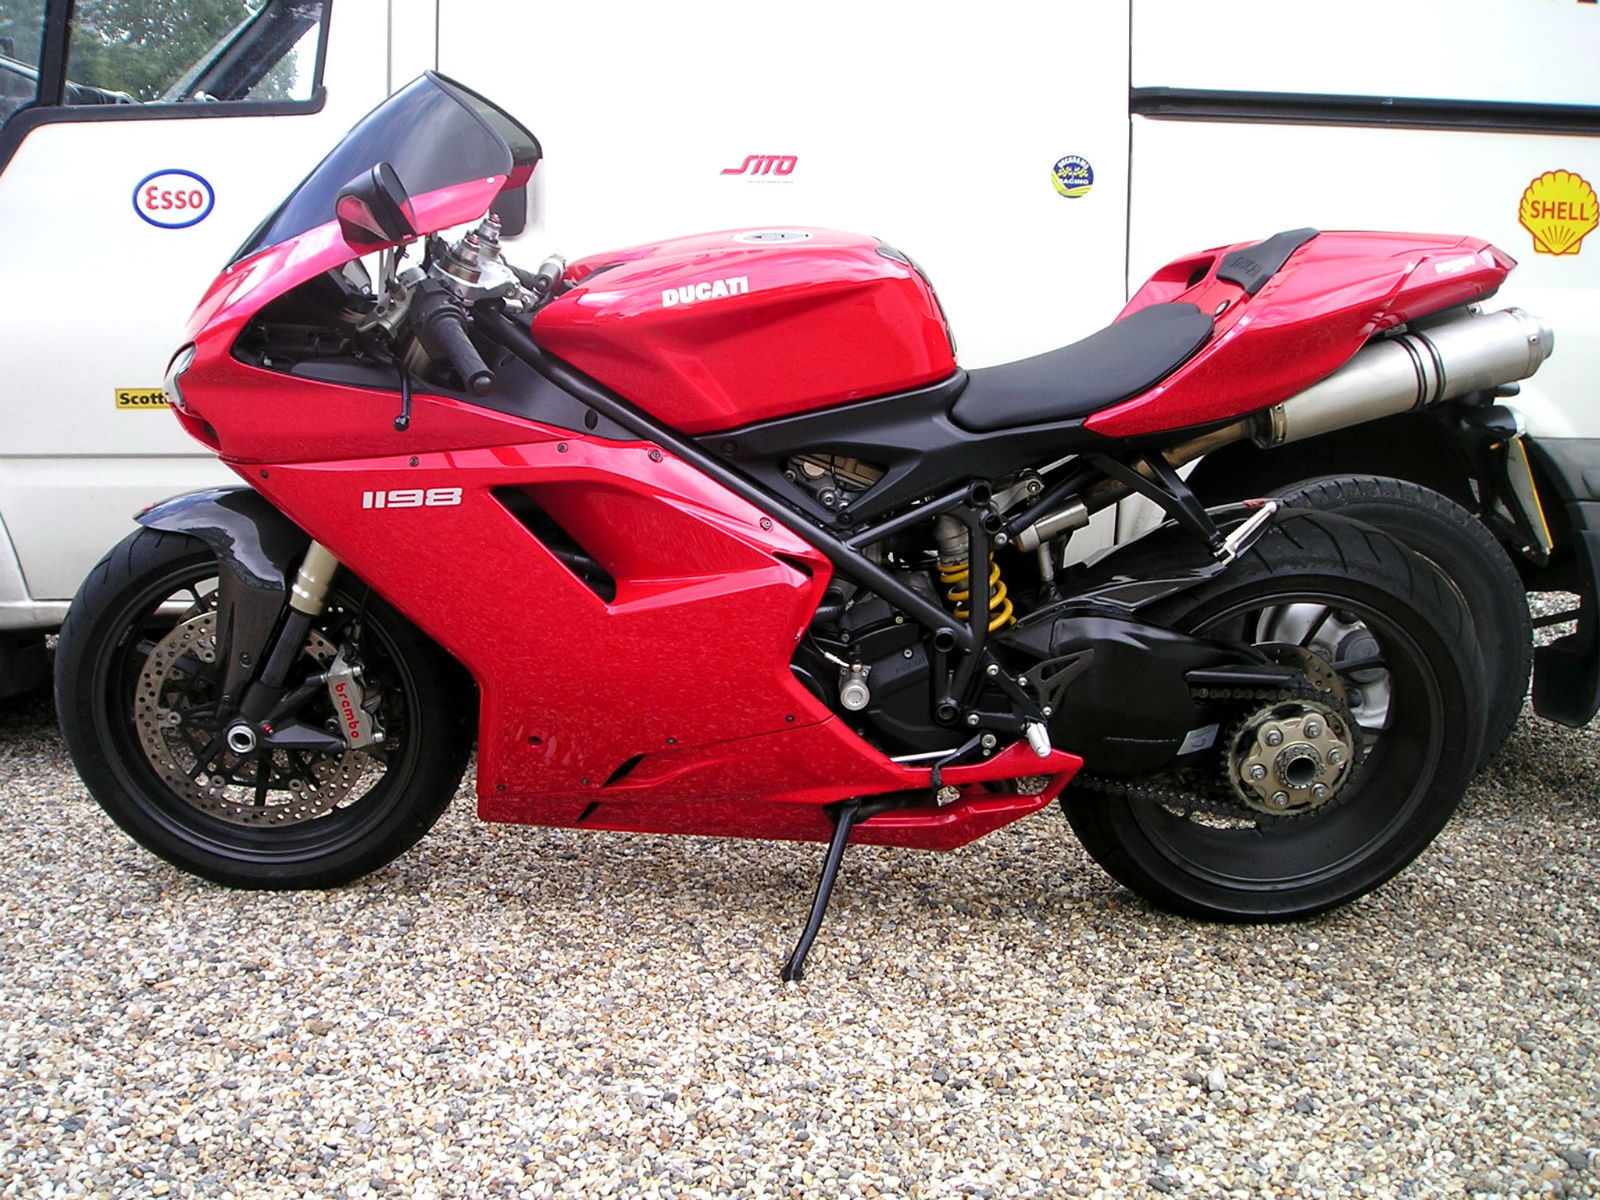 Ducati 1198 2 Owners 6800 Miles Ducati Corse Carbon Parts 2009